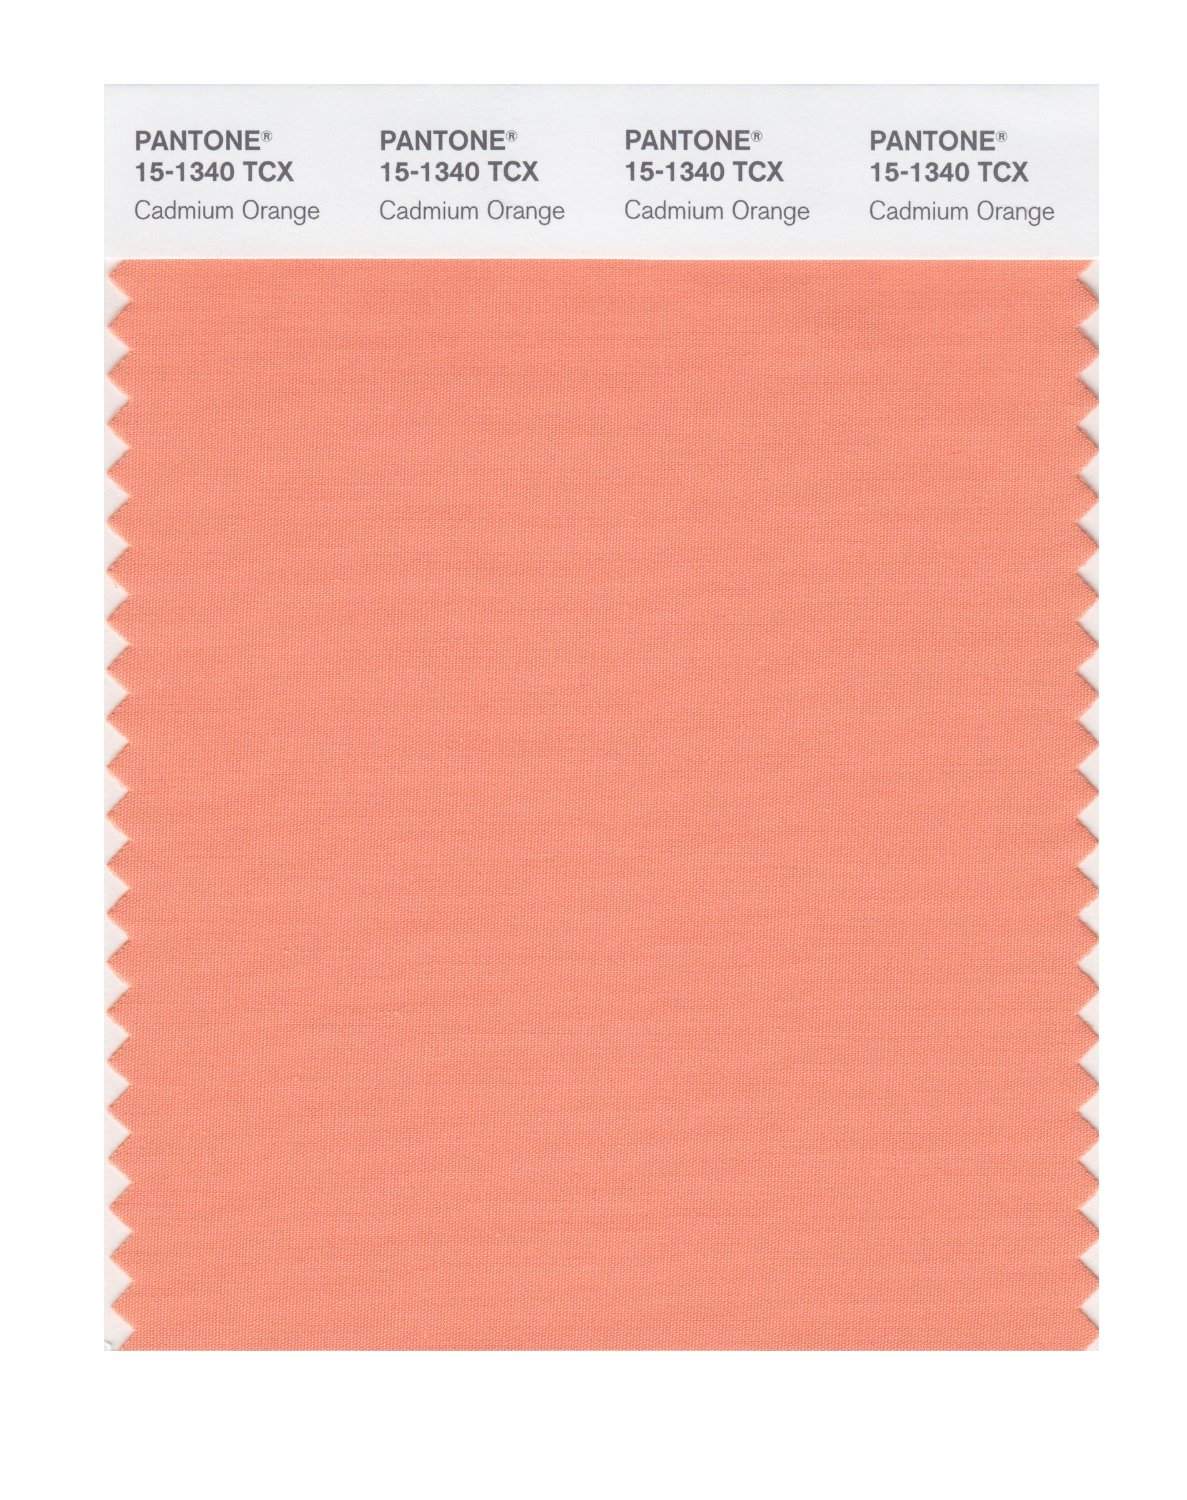 Pantone Smart Swatch 15-1340 Cadmium Orange